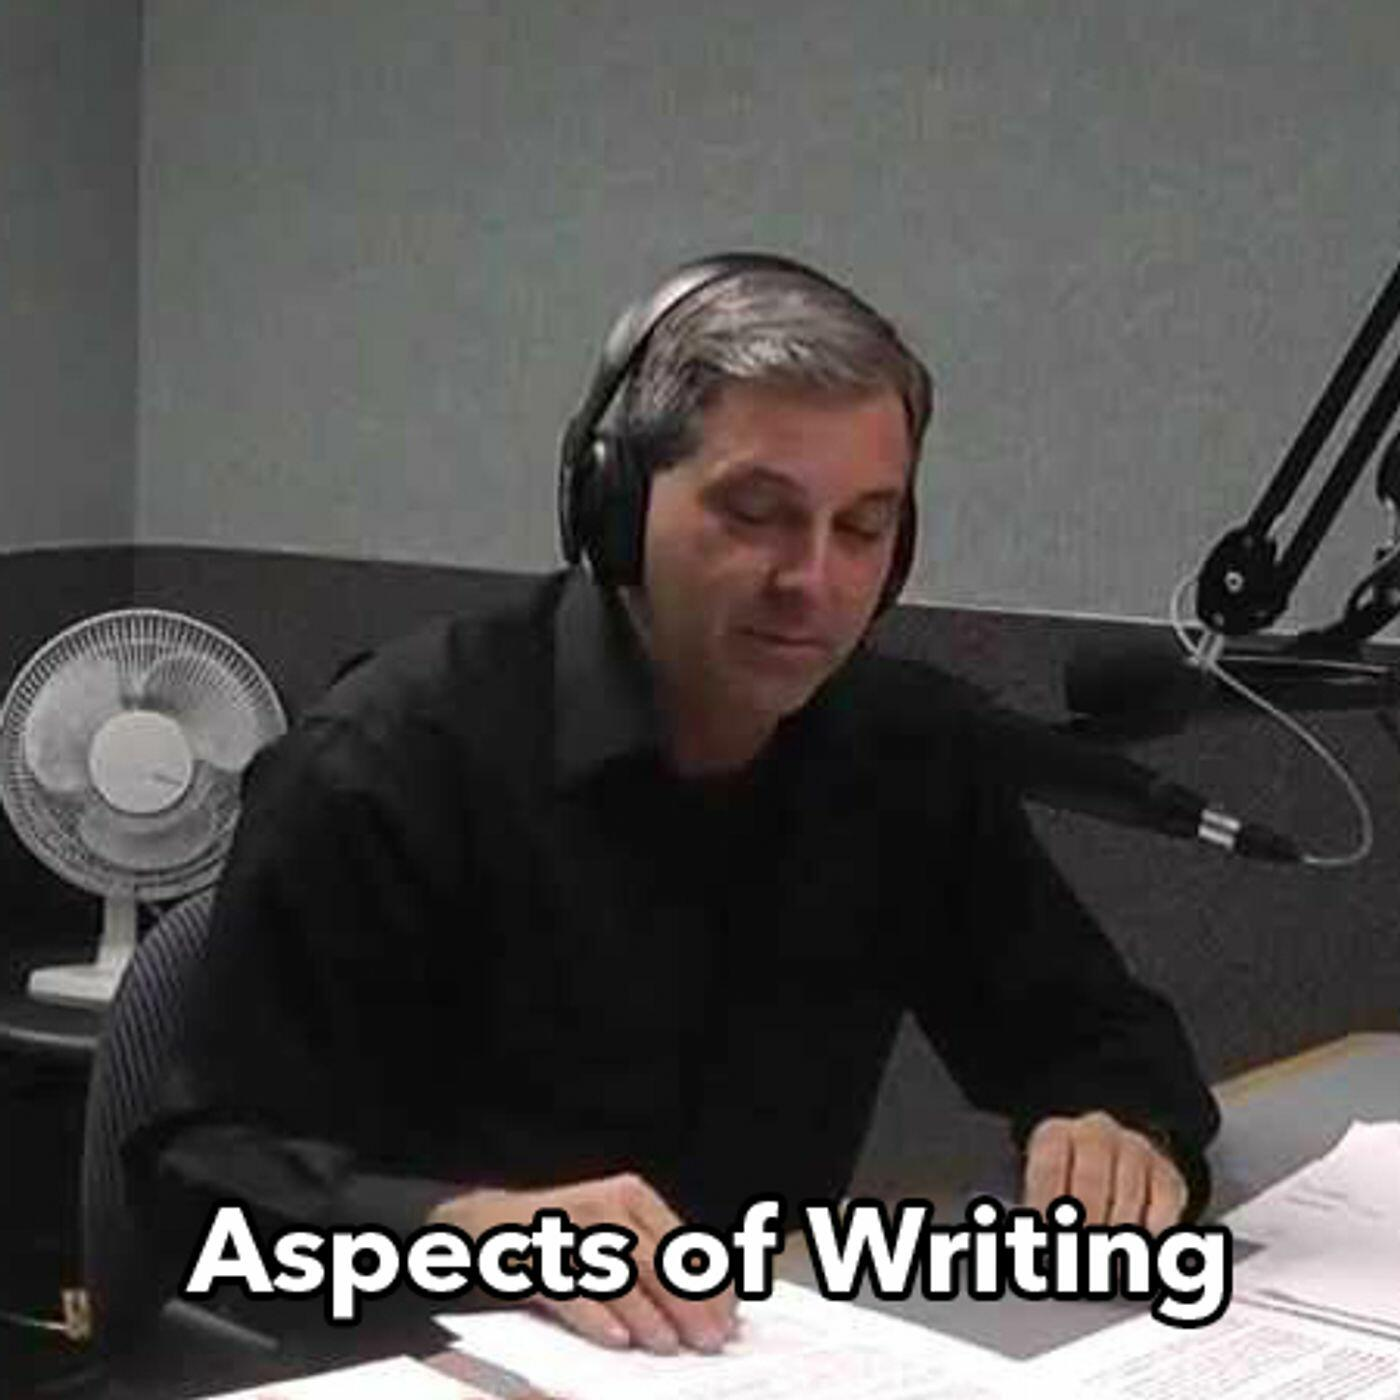 Listen to the Aspects of Writing Episode - Aspects of Writing - Writing an Autobiography and Sensuality on iHeartRadio | iHeartRadio